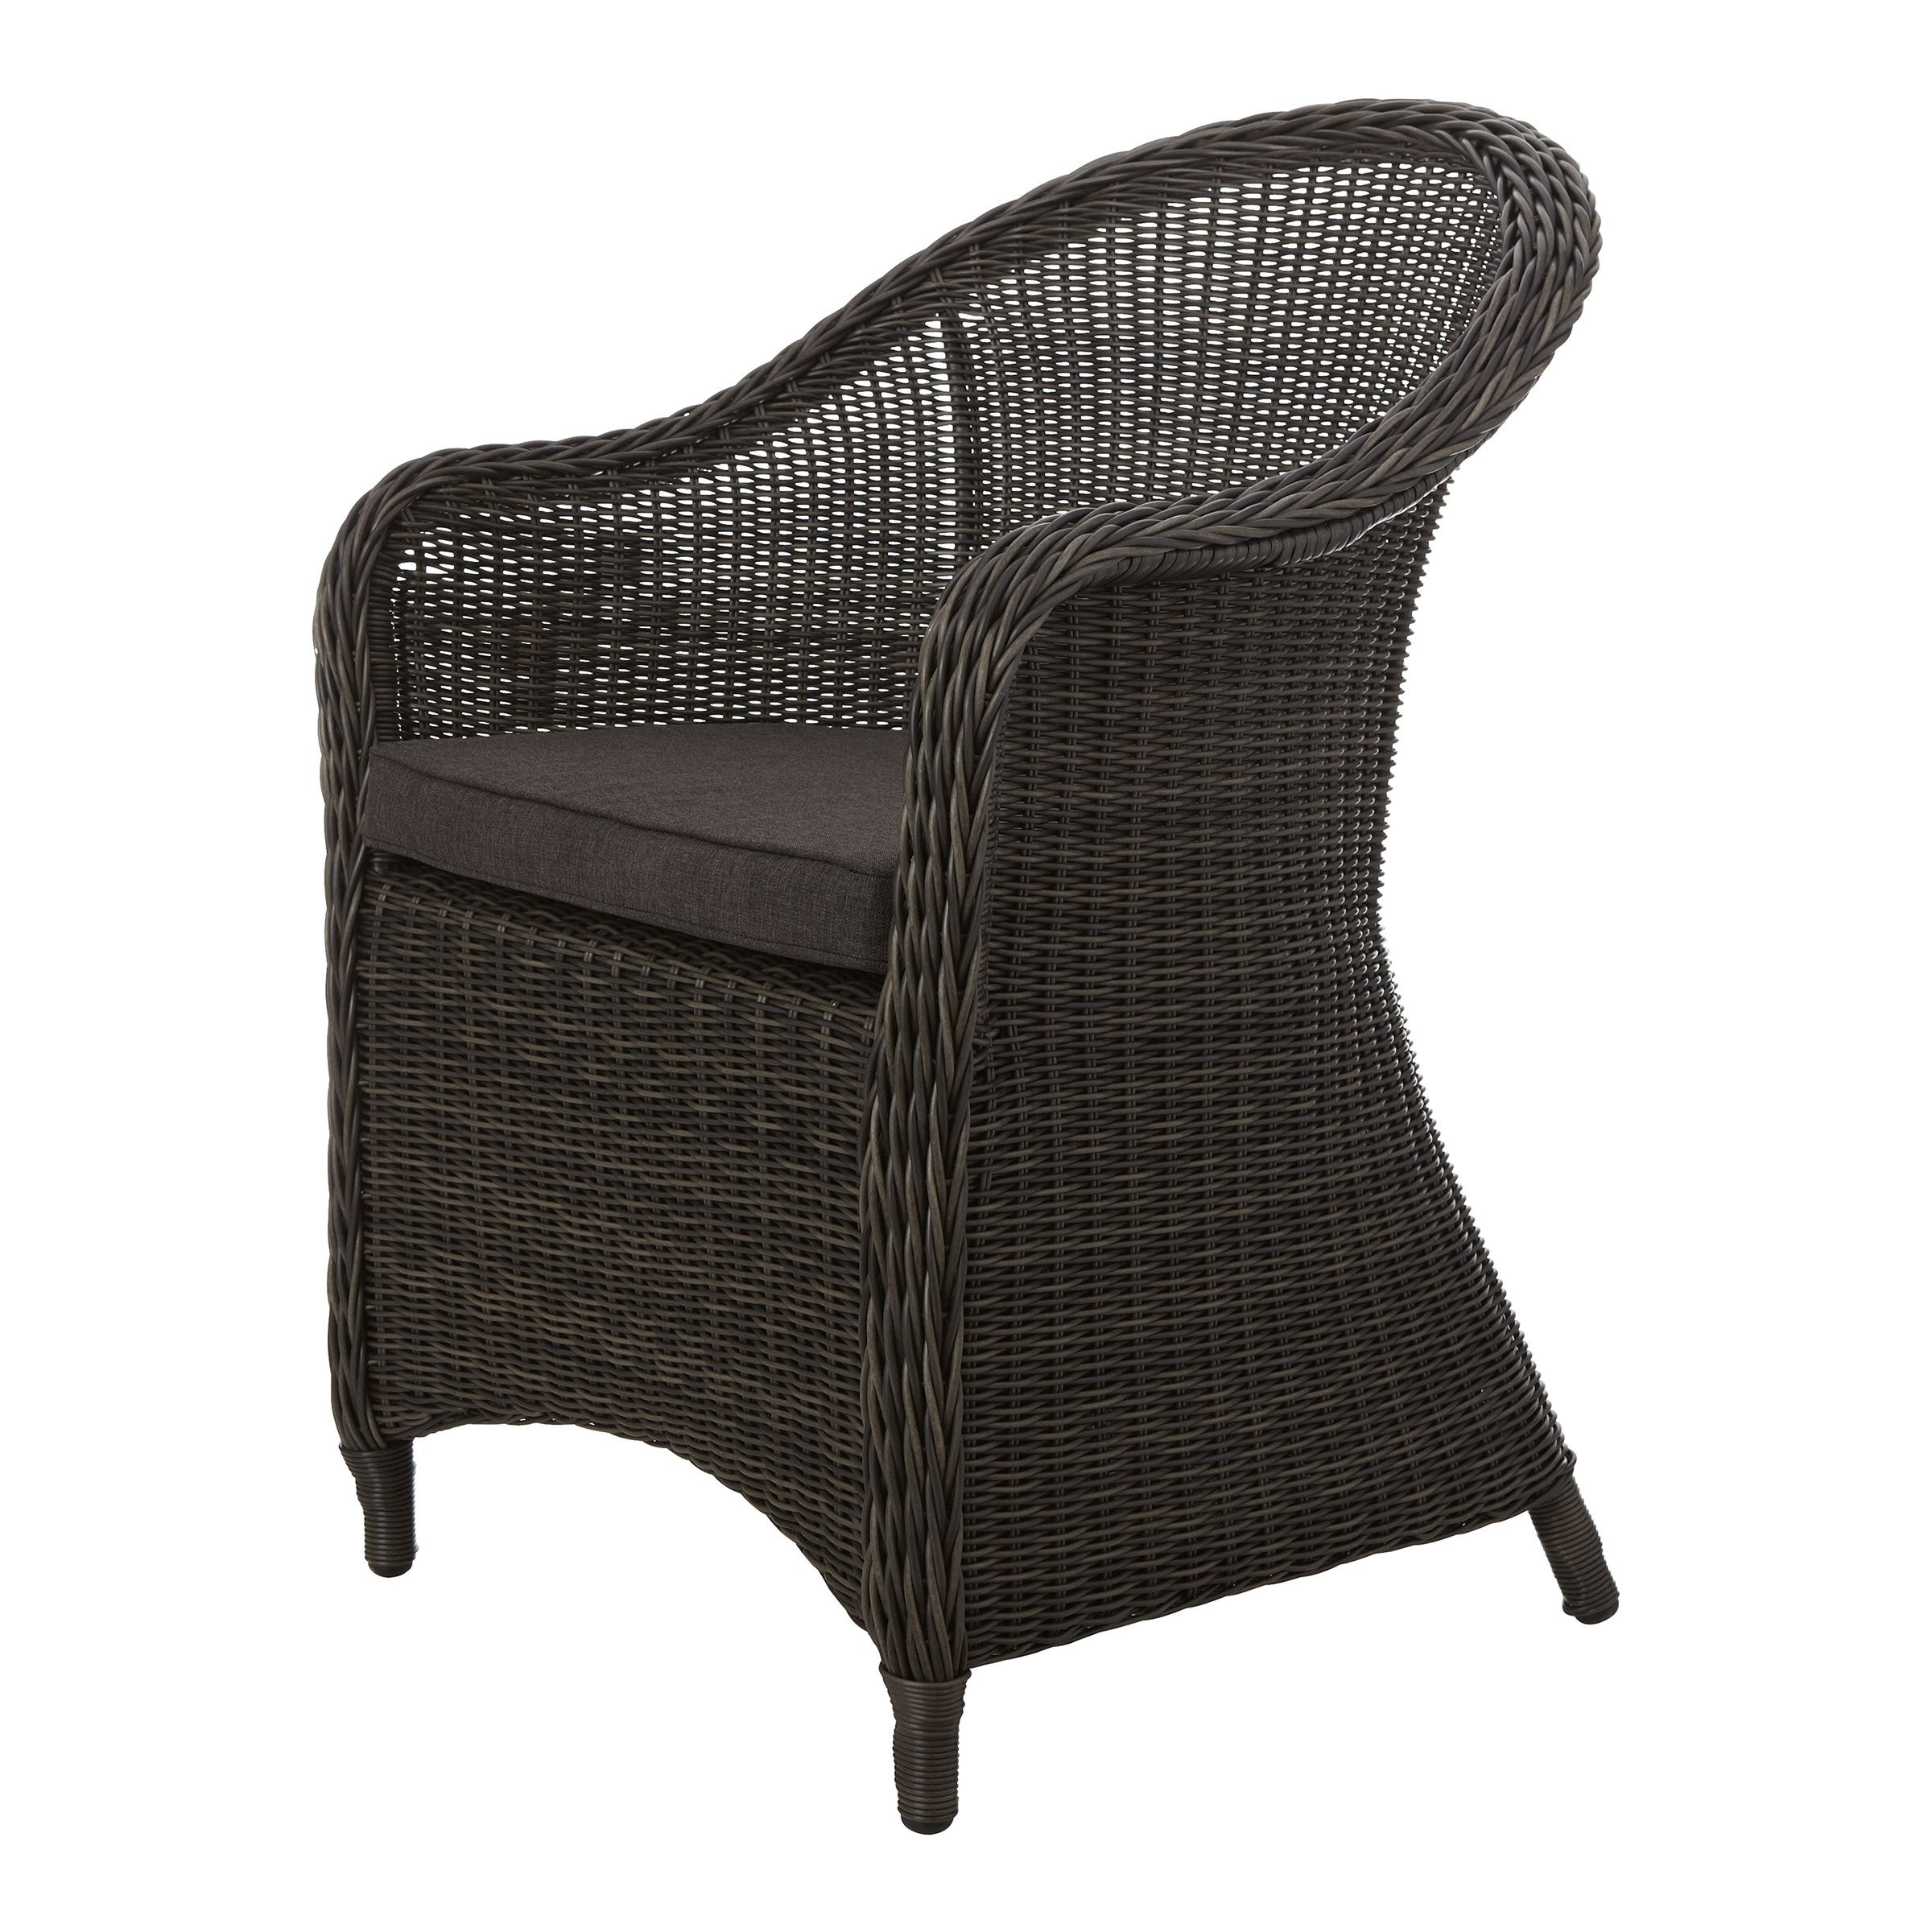 Mimosa Prado Vintage Wicker Chair Bunnings Warehouse